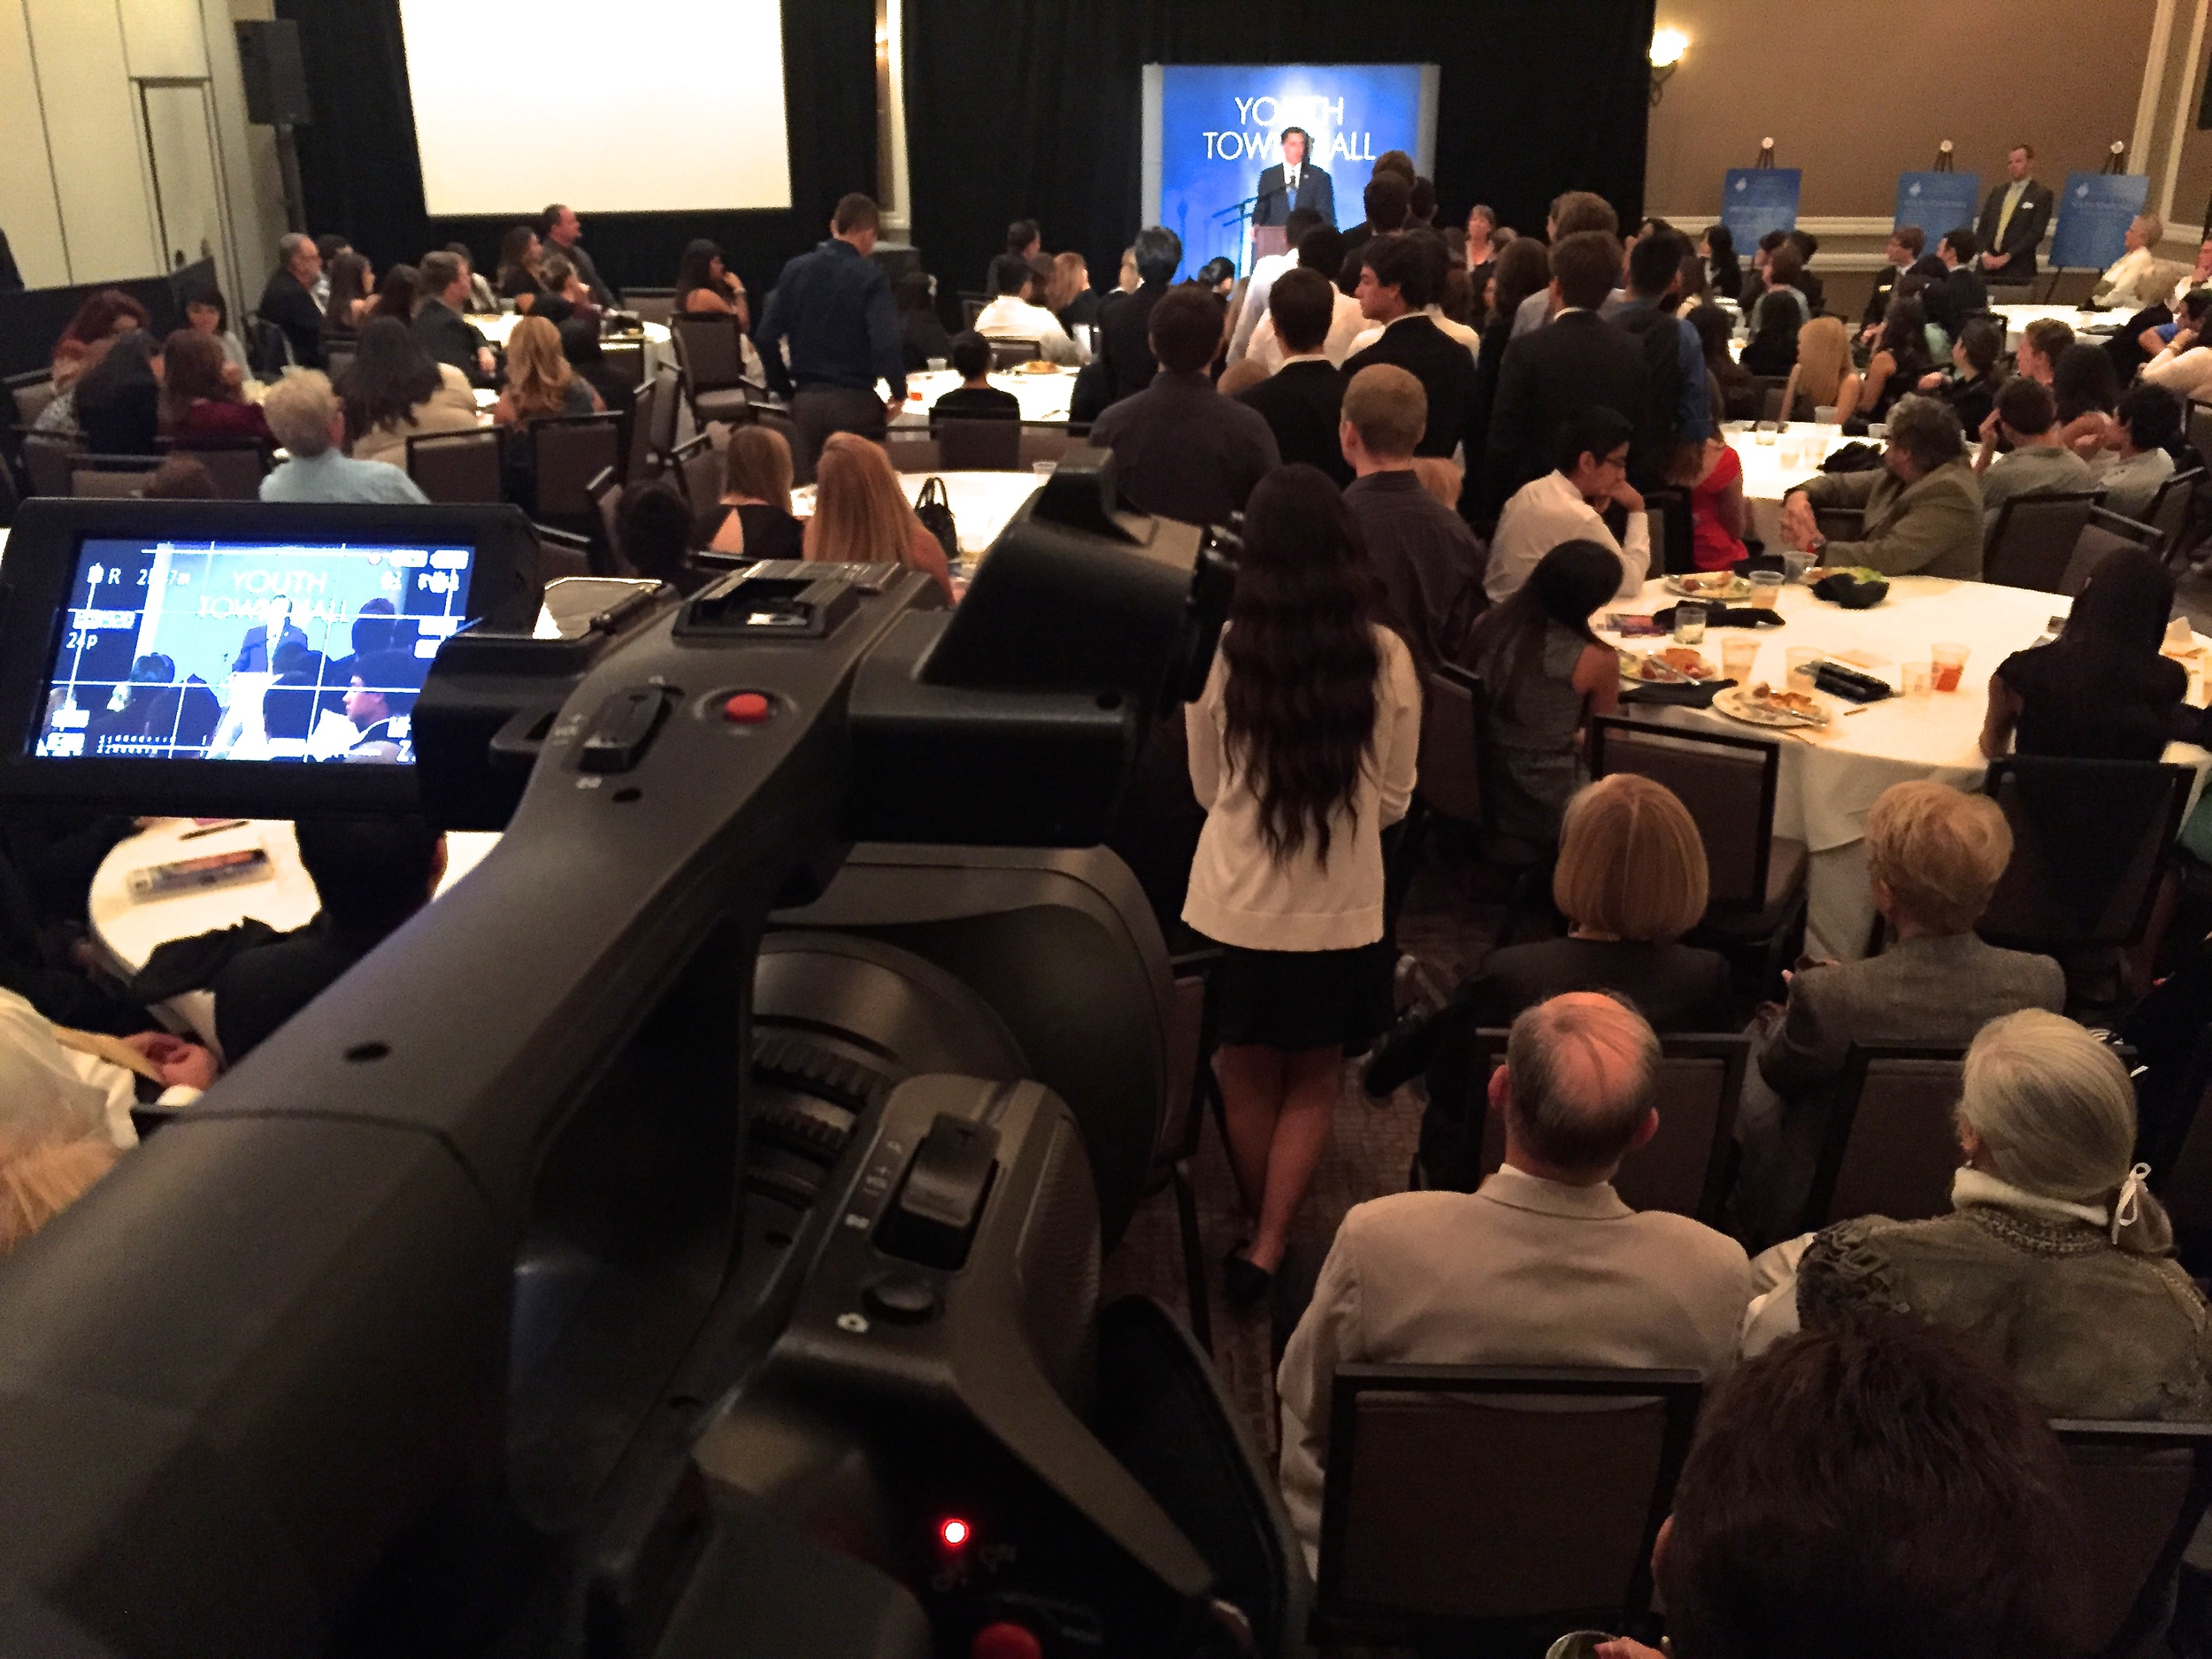 DATA students film Mitt Romney's Youth Town Hall event.